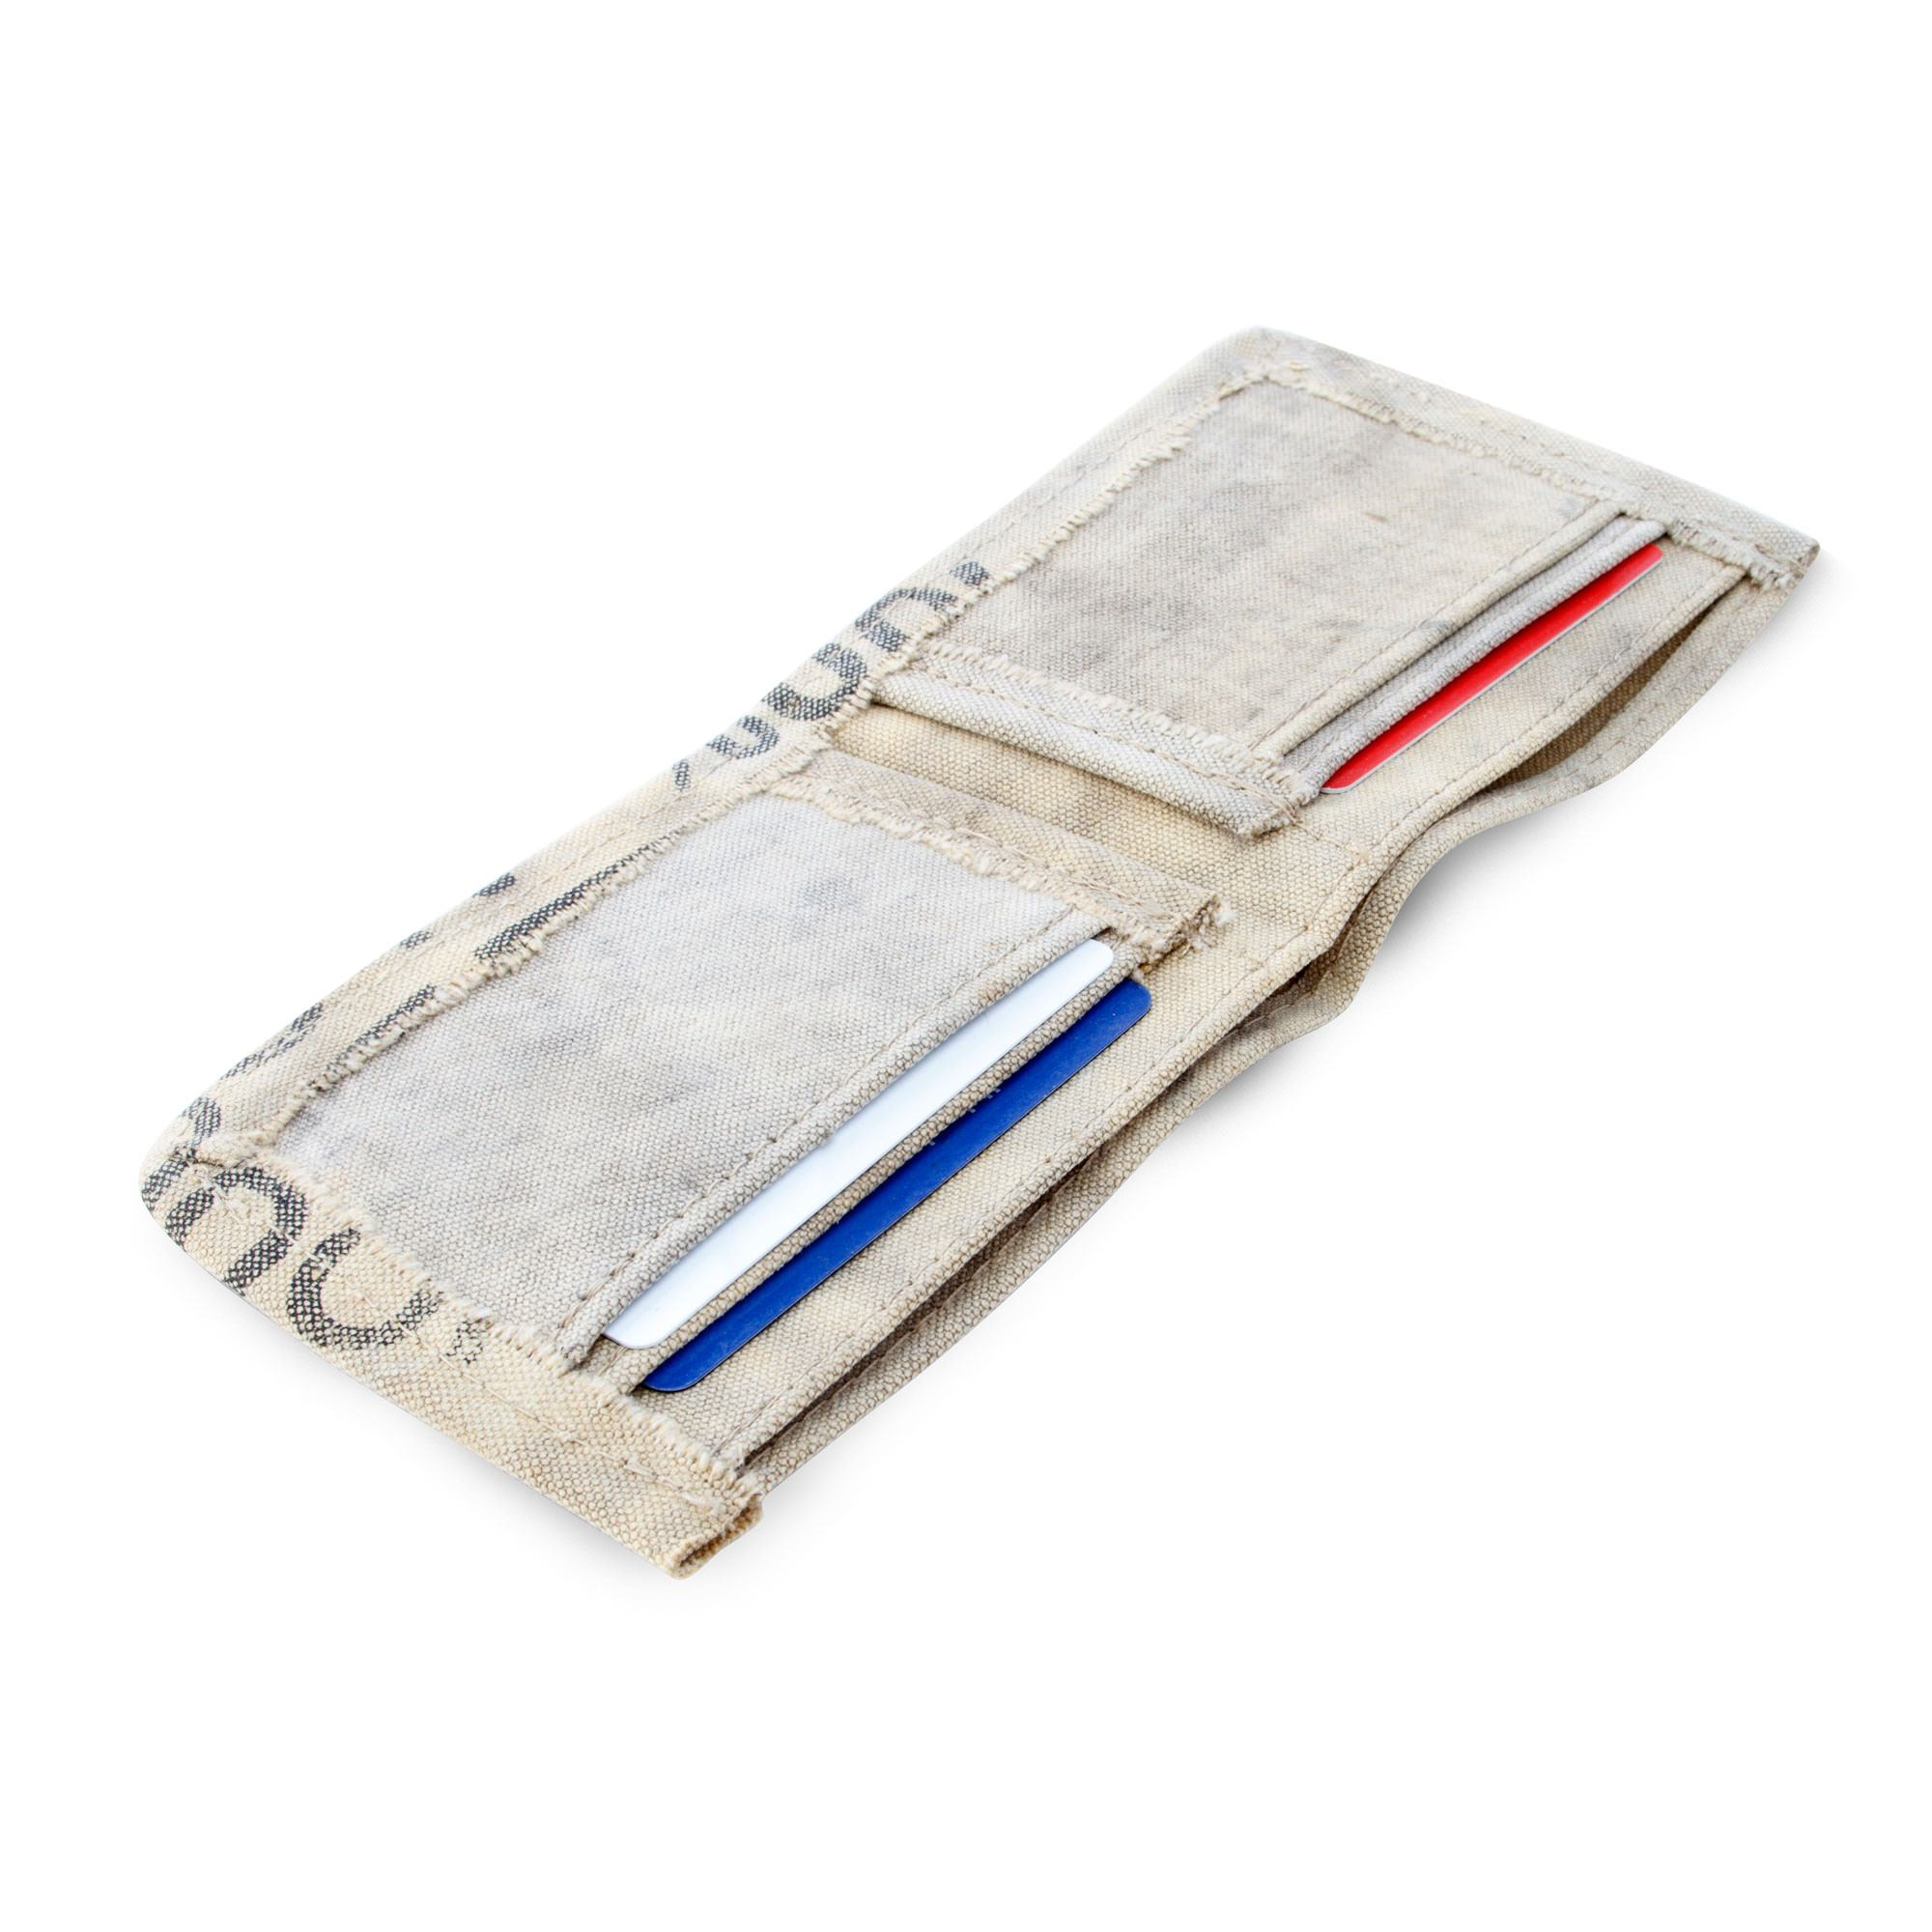 Bariri Bi-Fold Wallet by The Real Deal: Made In Brazil